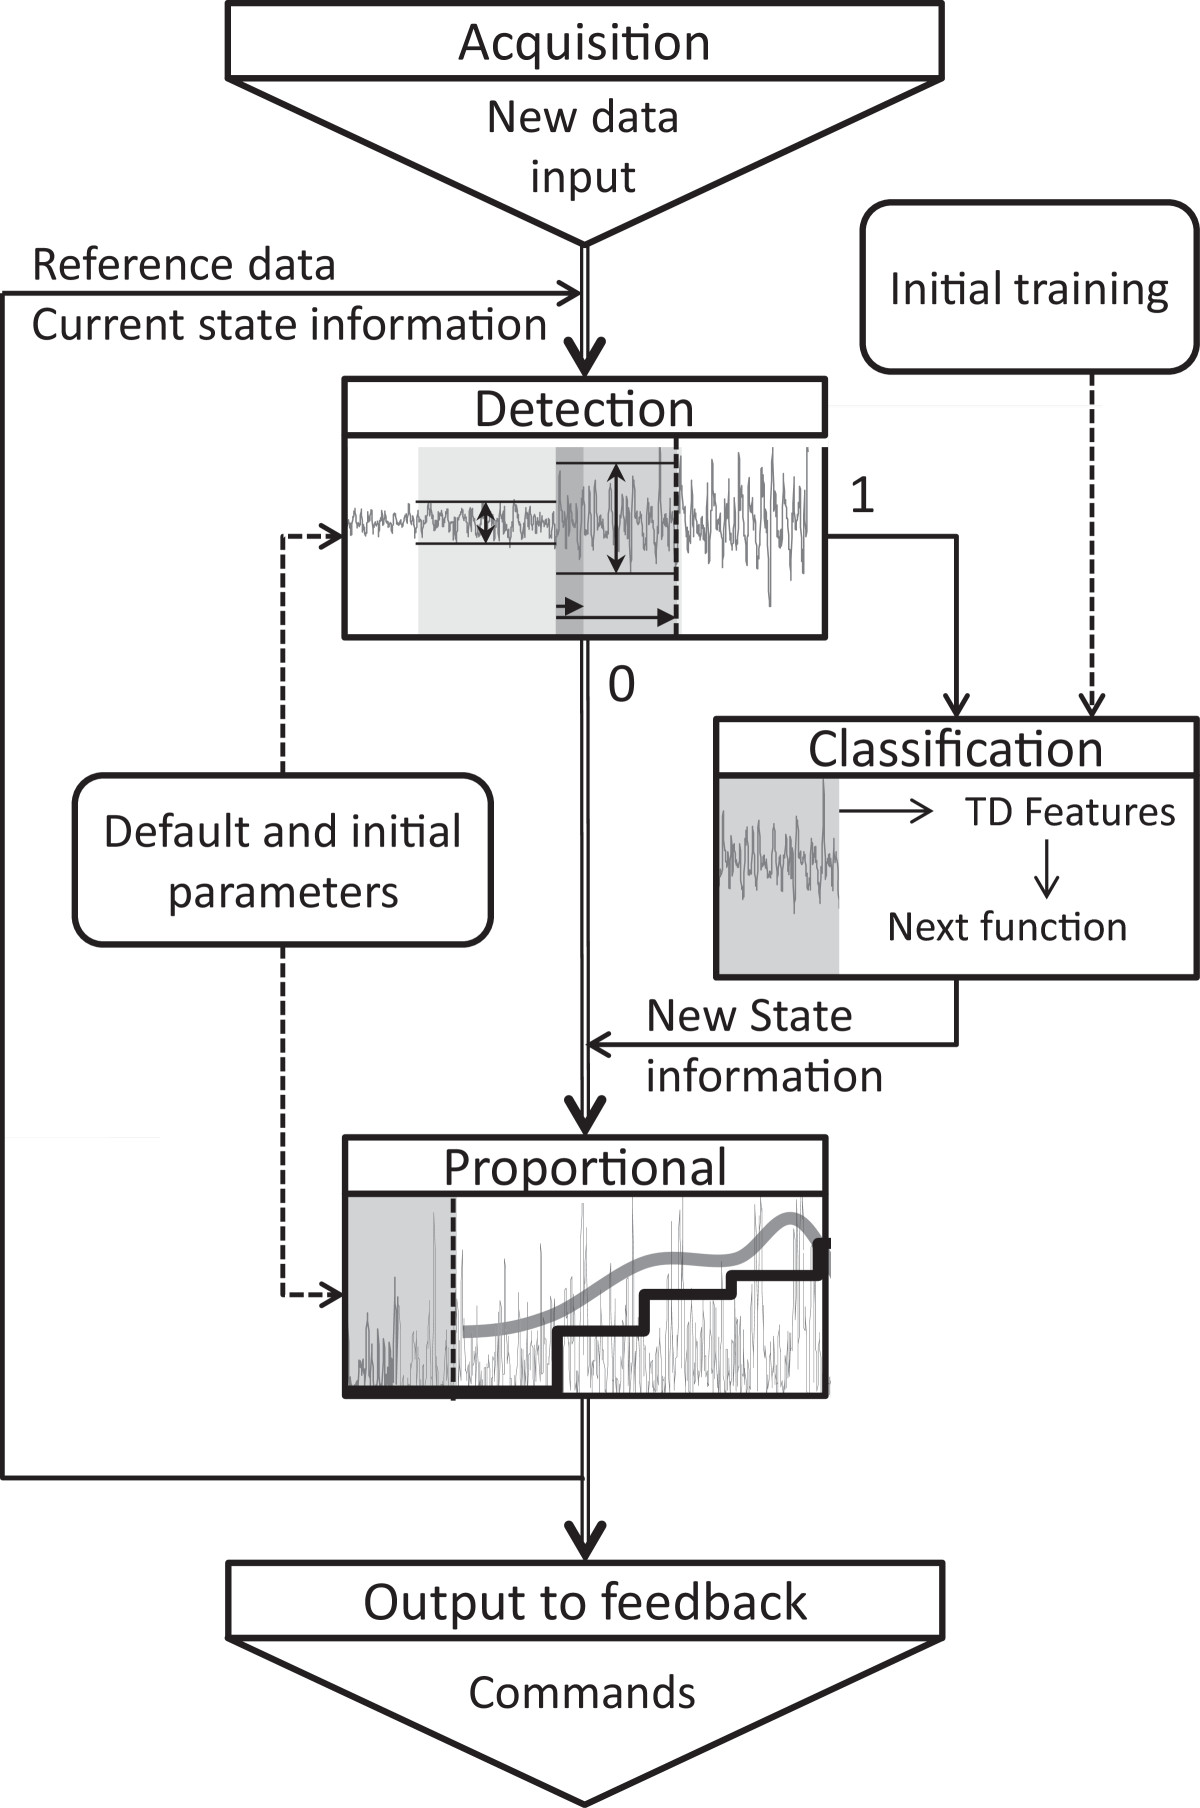 http://static-content.springer.com/image/art%3A10.1186%2F1743-0003-11-110/MediaObjects/12984_2014_Article_633_Fig1_HTML.jpg